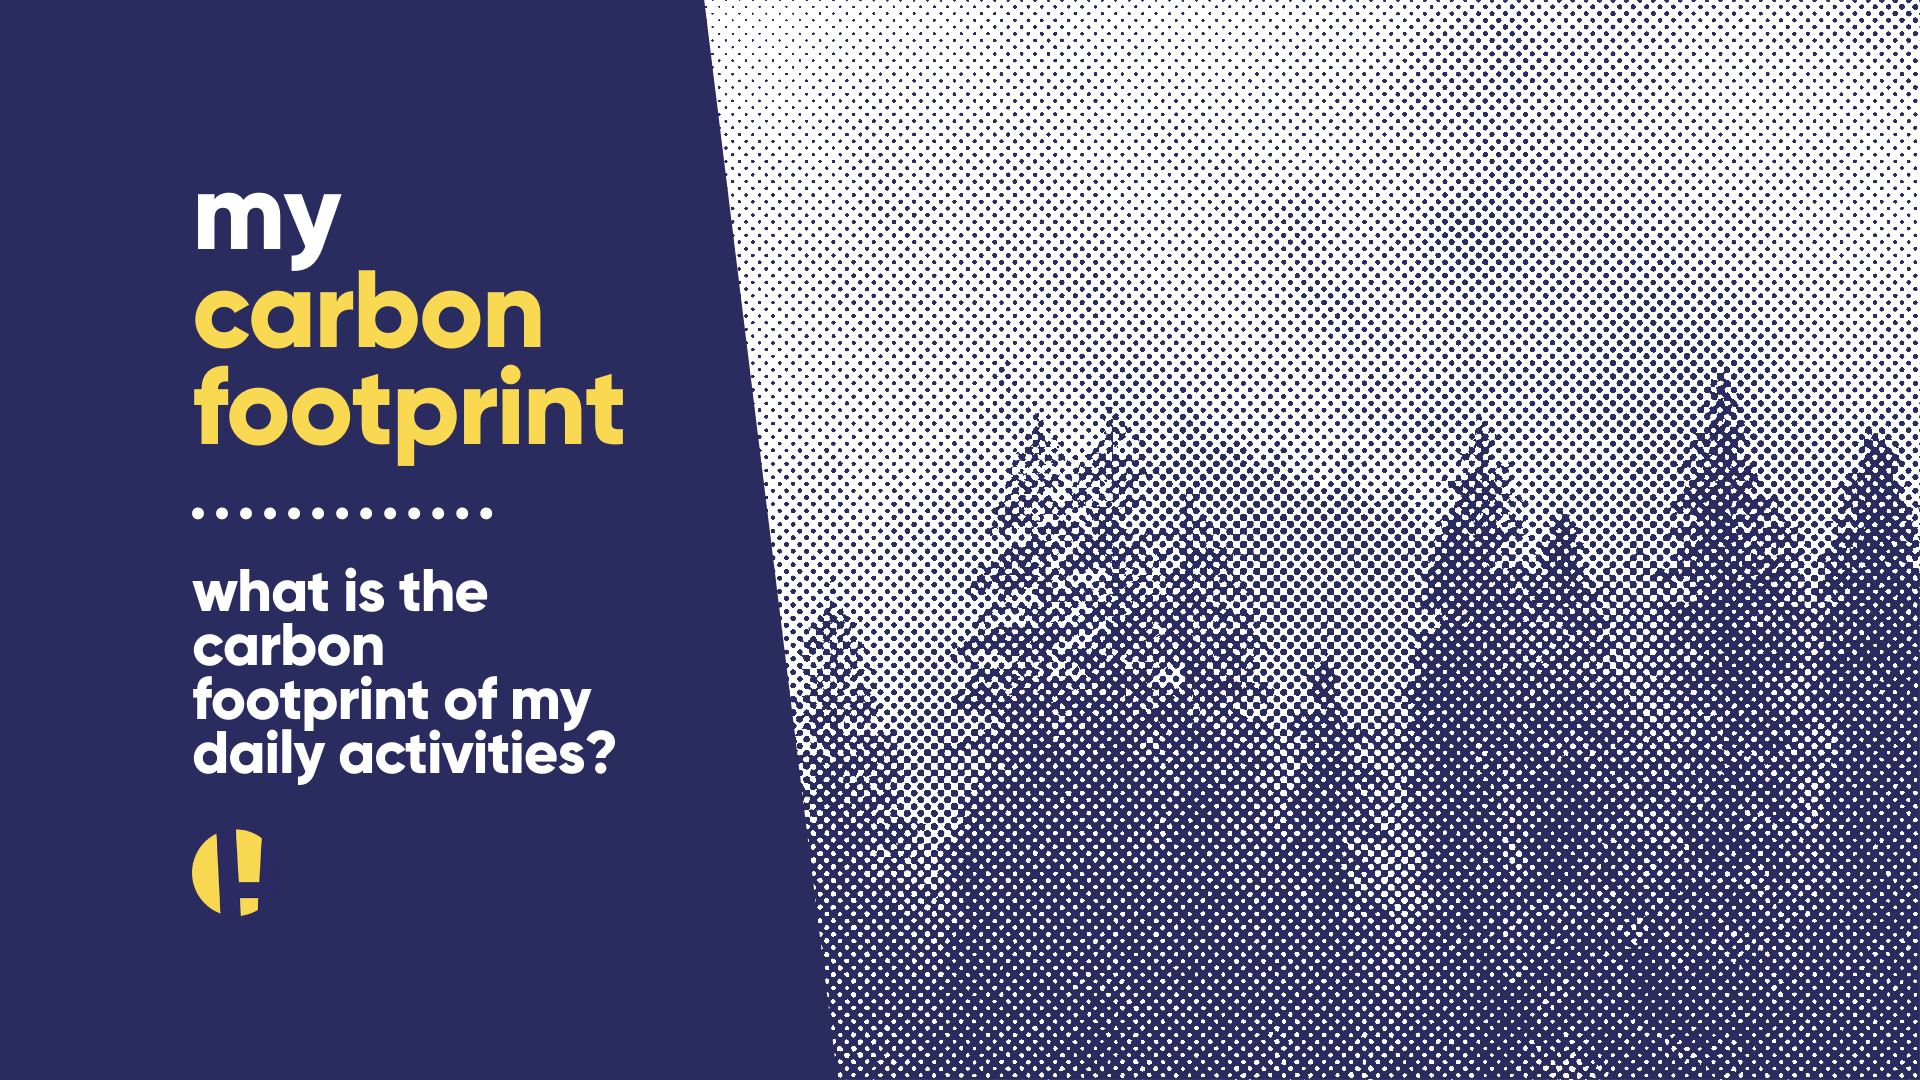 Image of trees - text reads my carbon footprint: what is the carbon footprint of my daily activities?